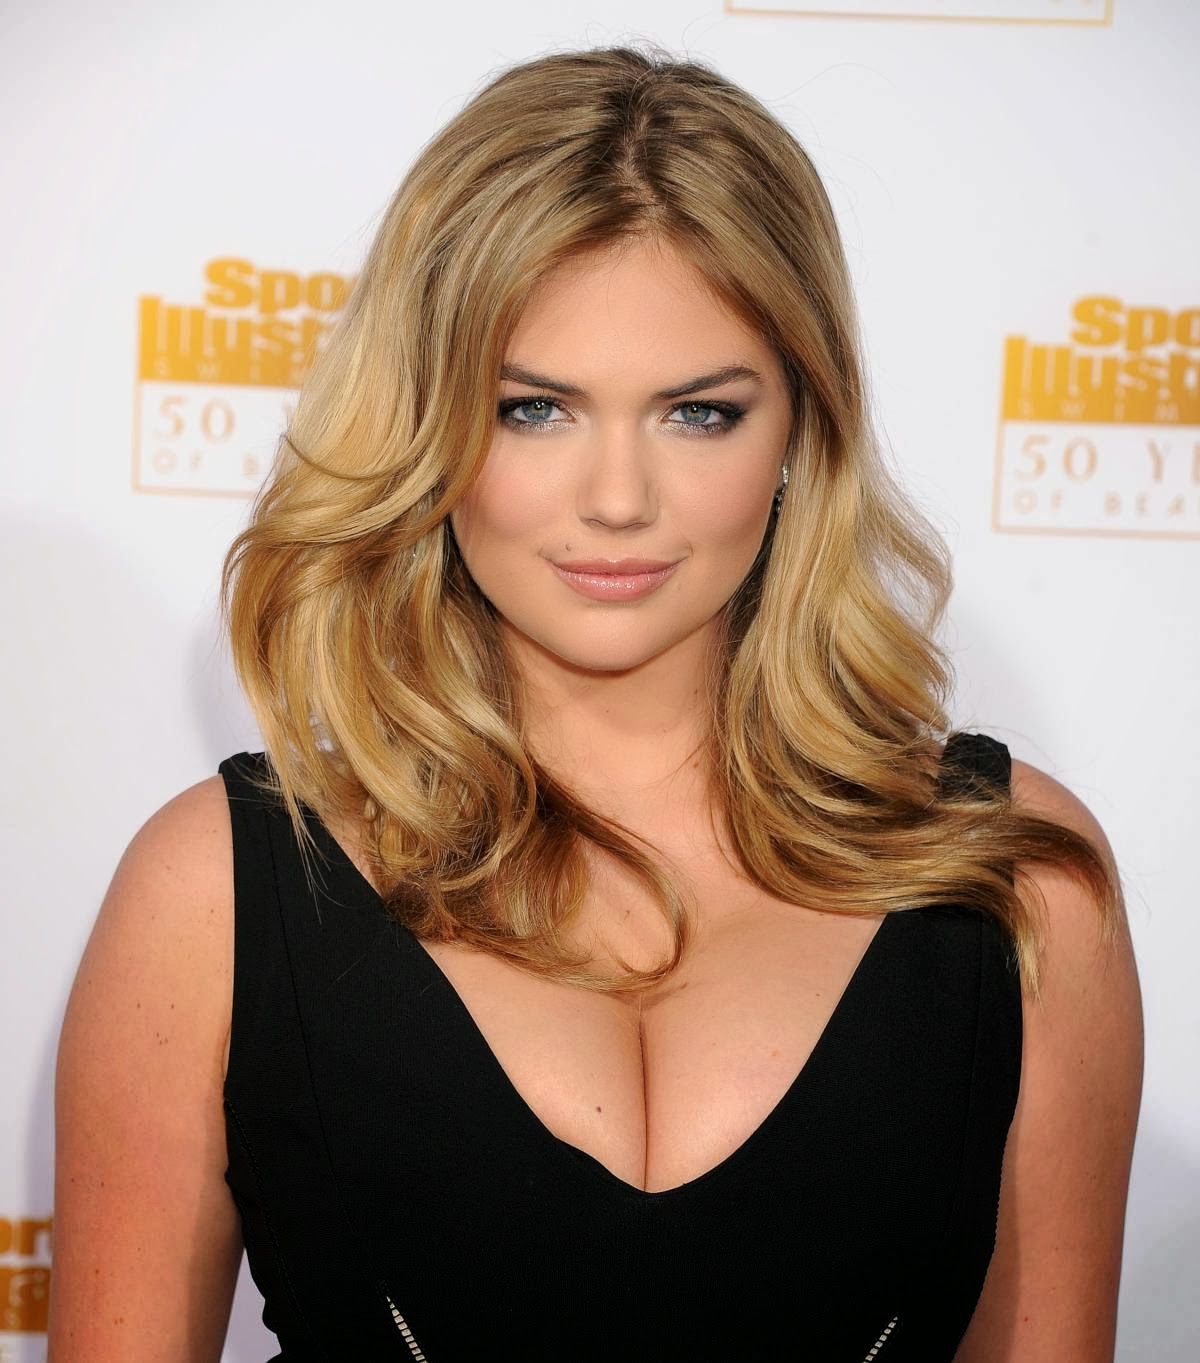 50th Sports Illustrated Swimsuit Beautiful In